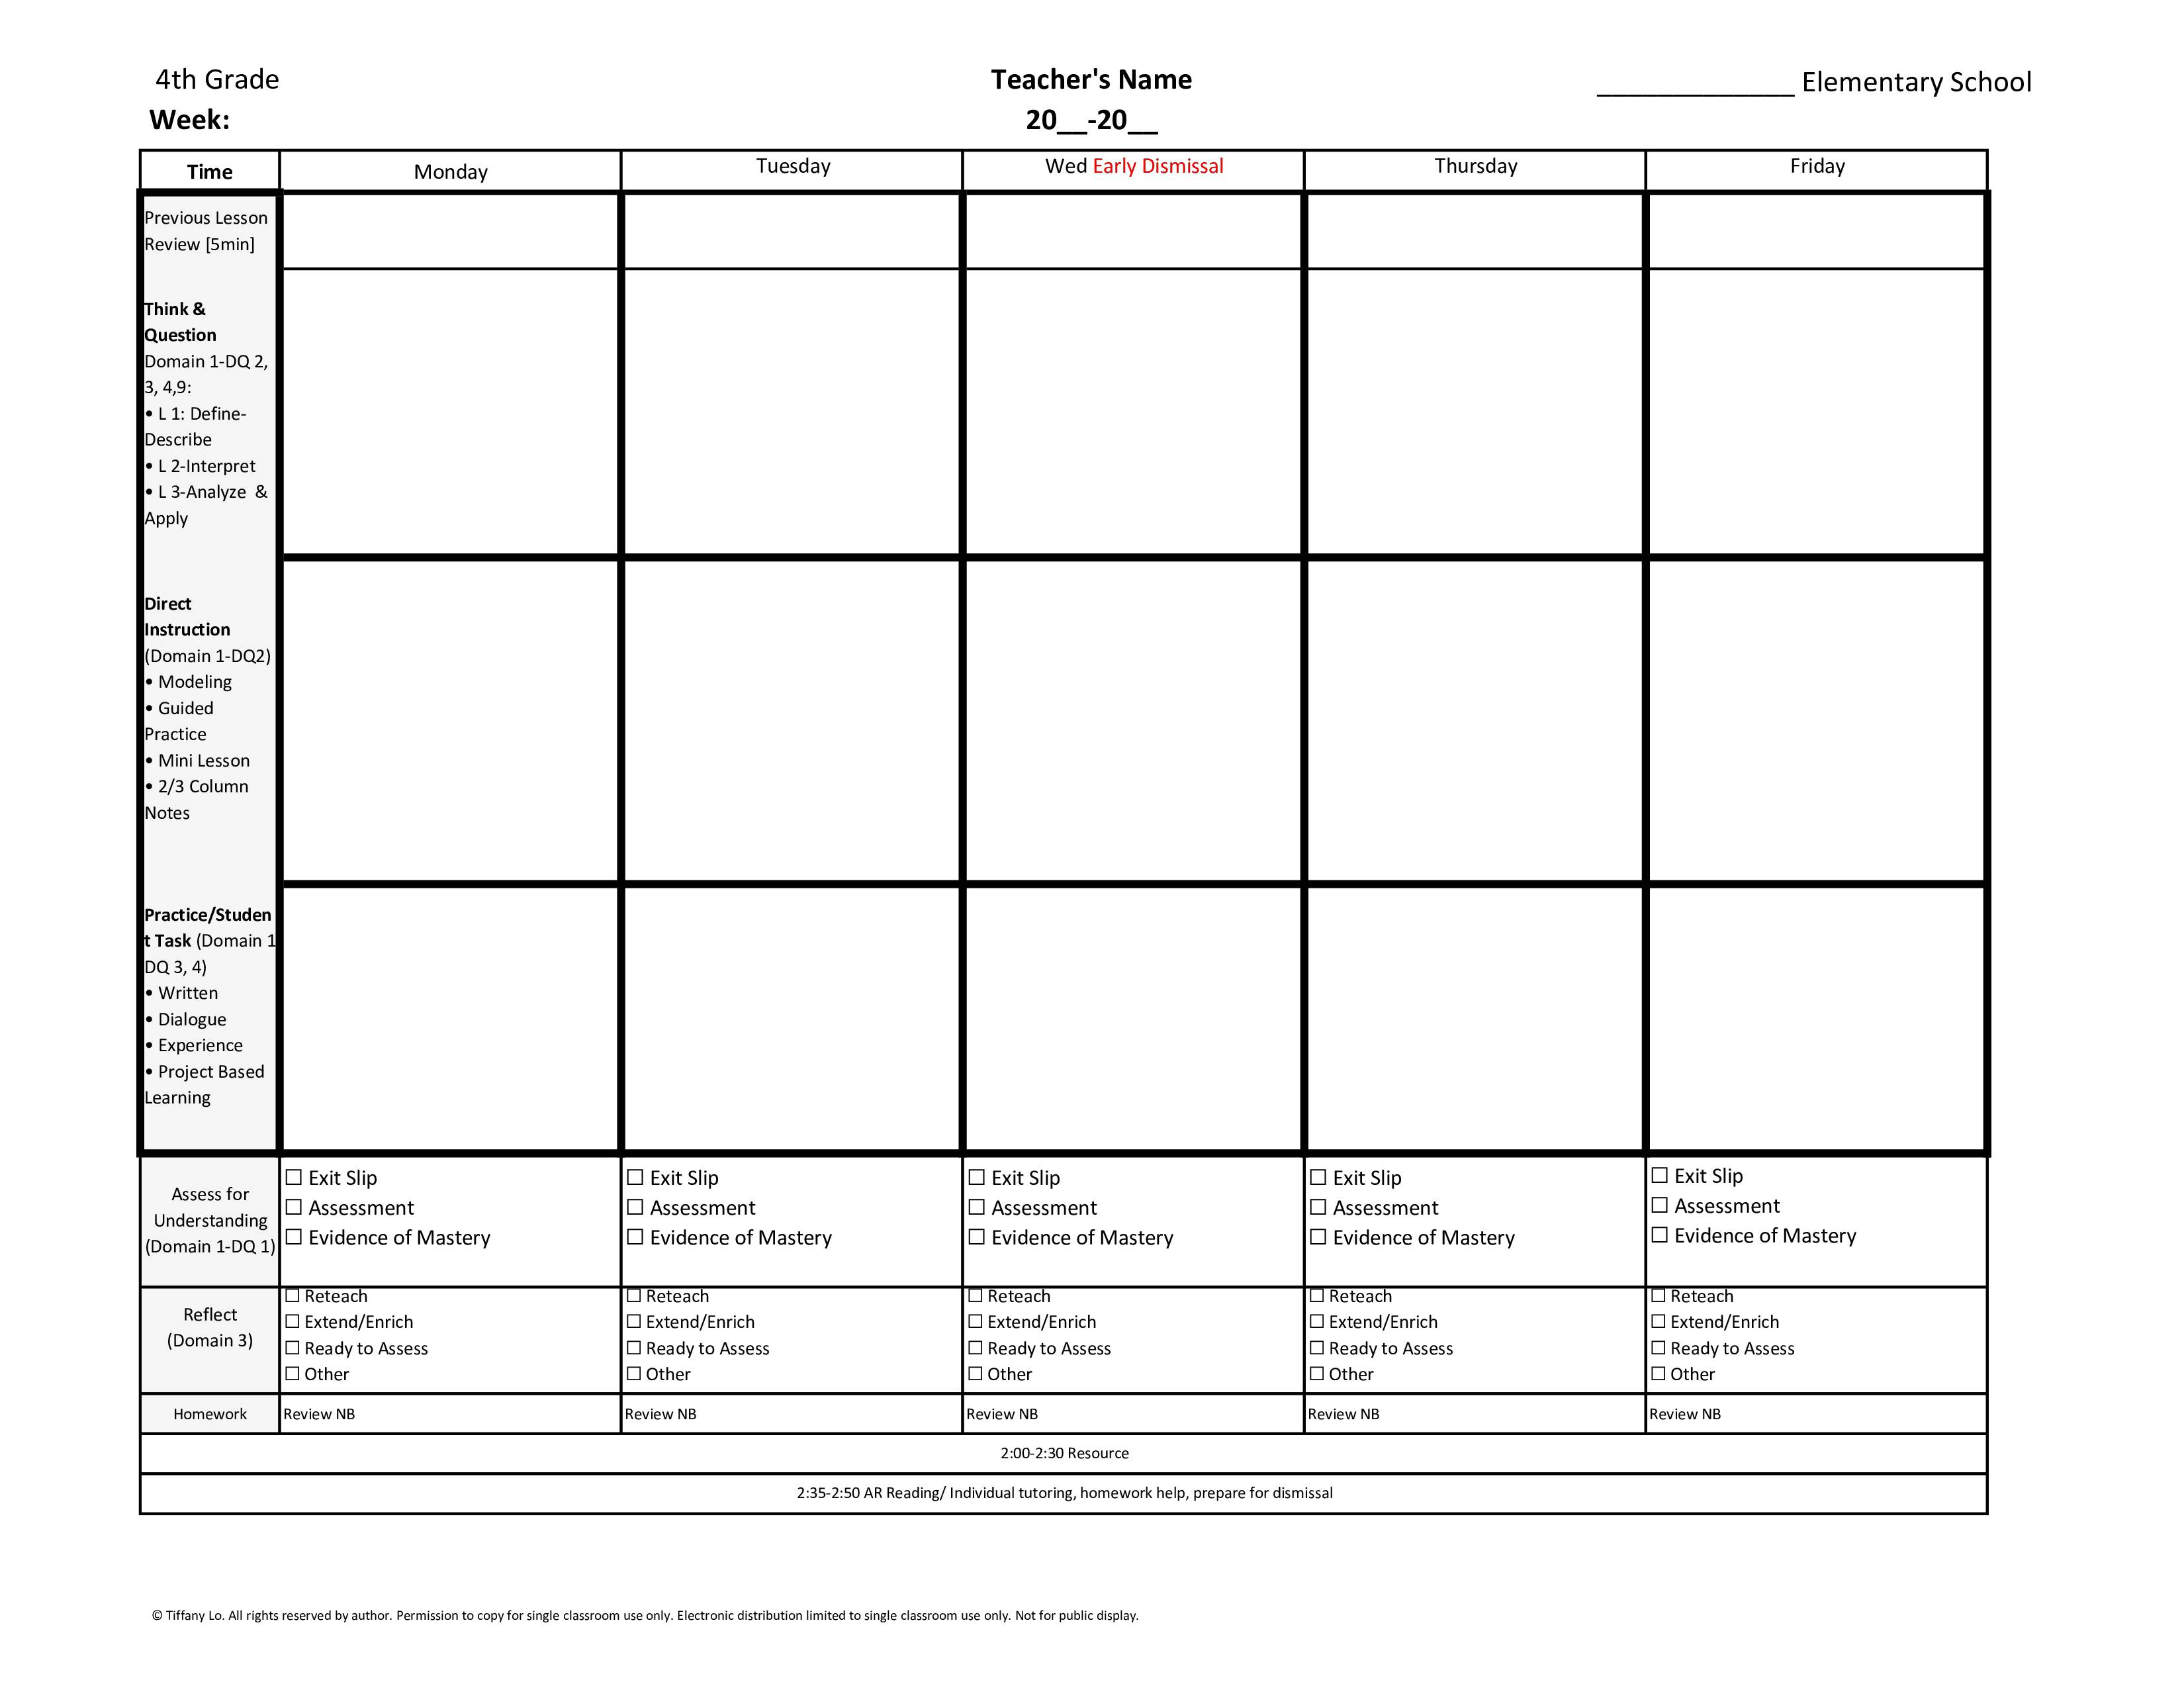 4th Fourth Grade Weekly Lesson Plan Template ...